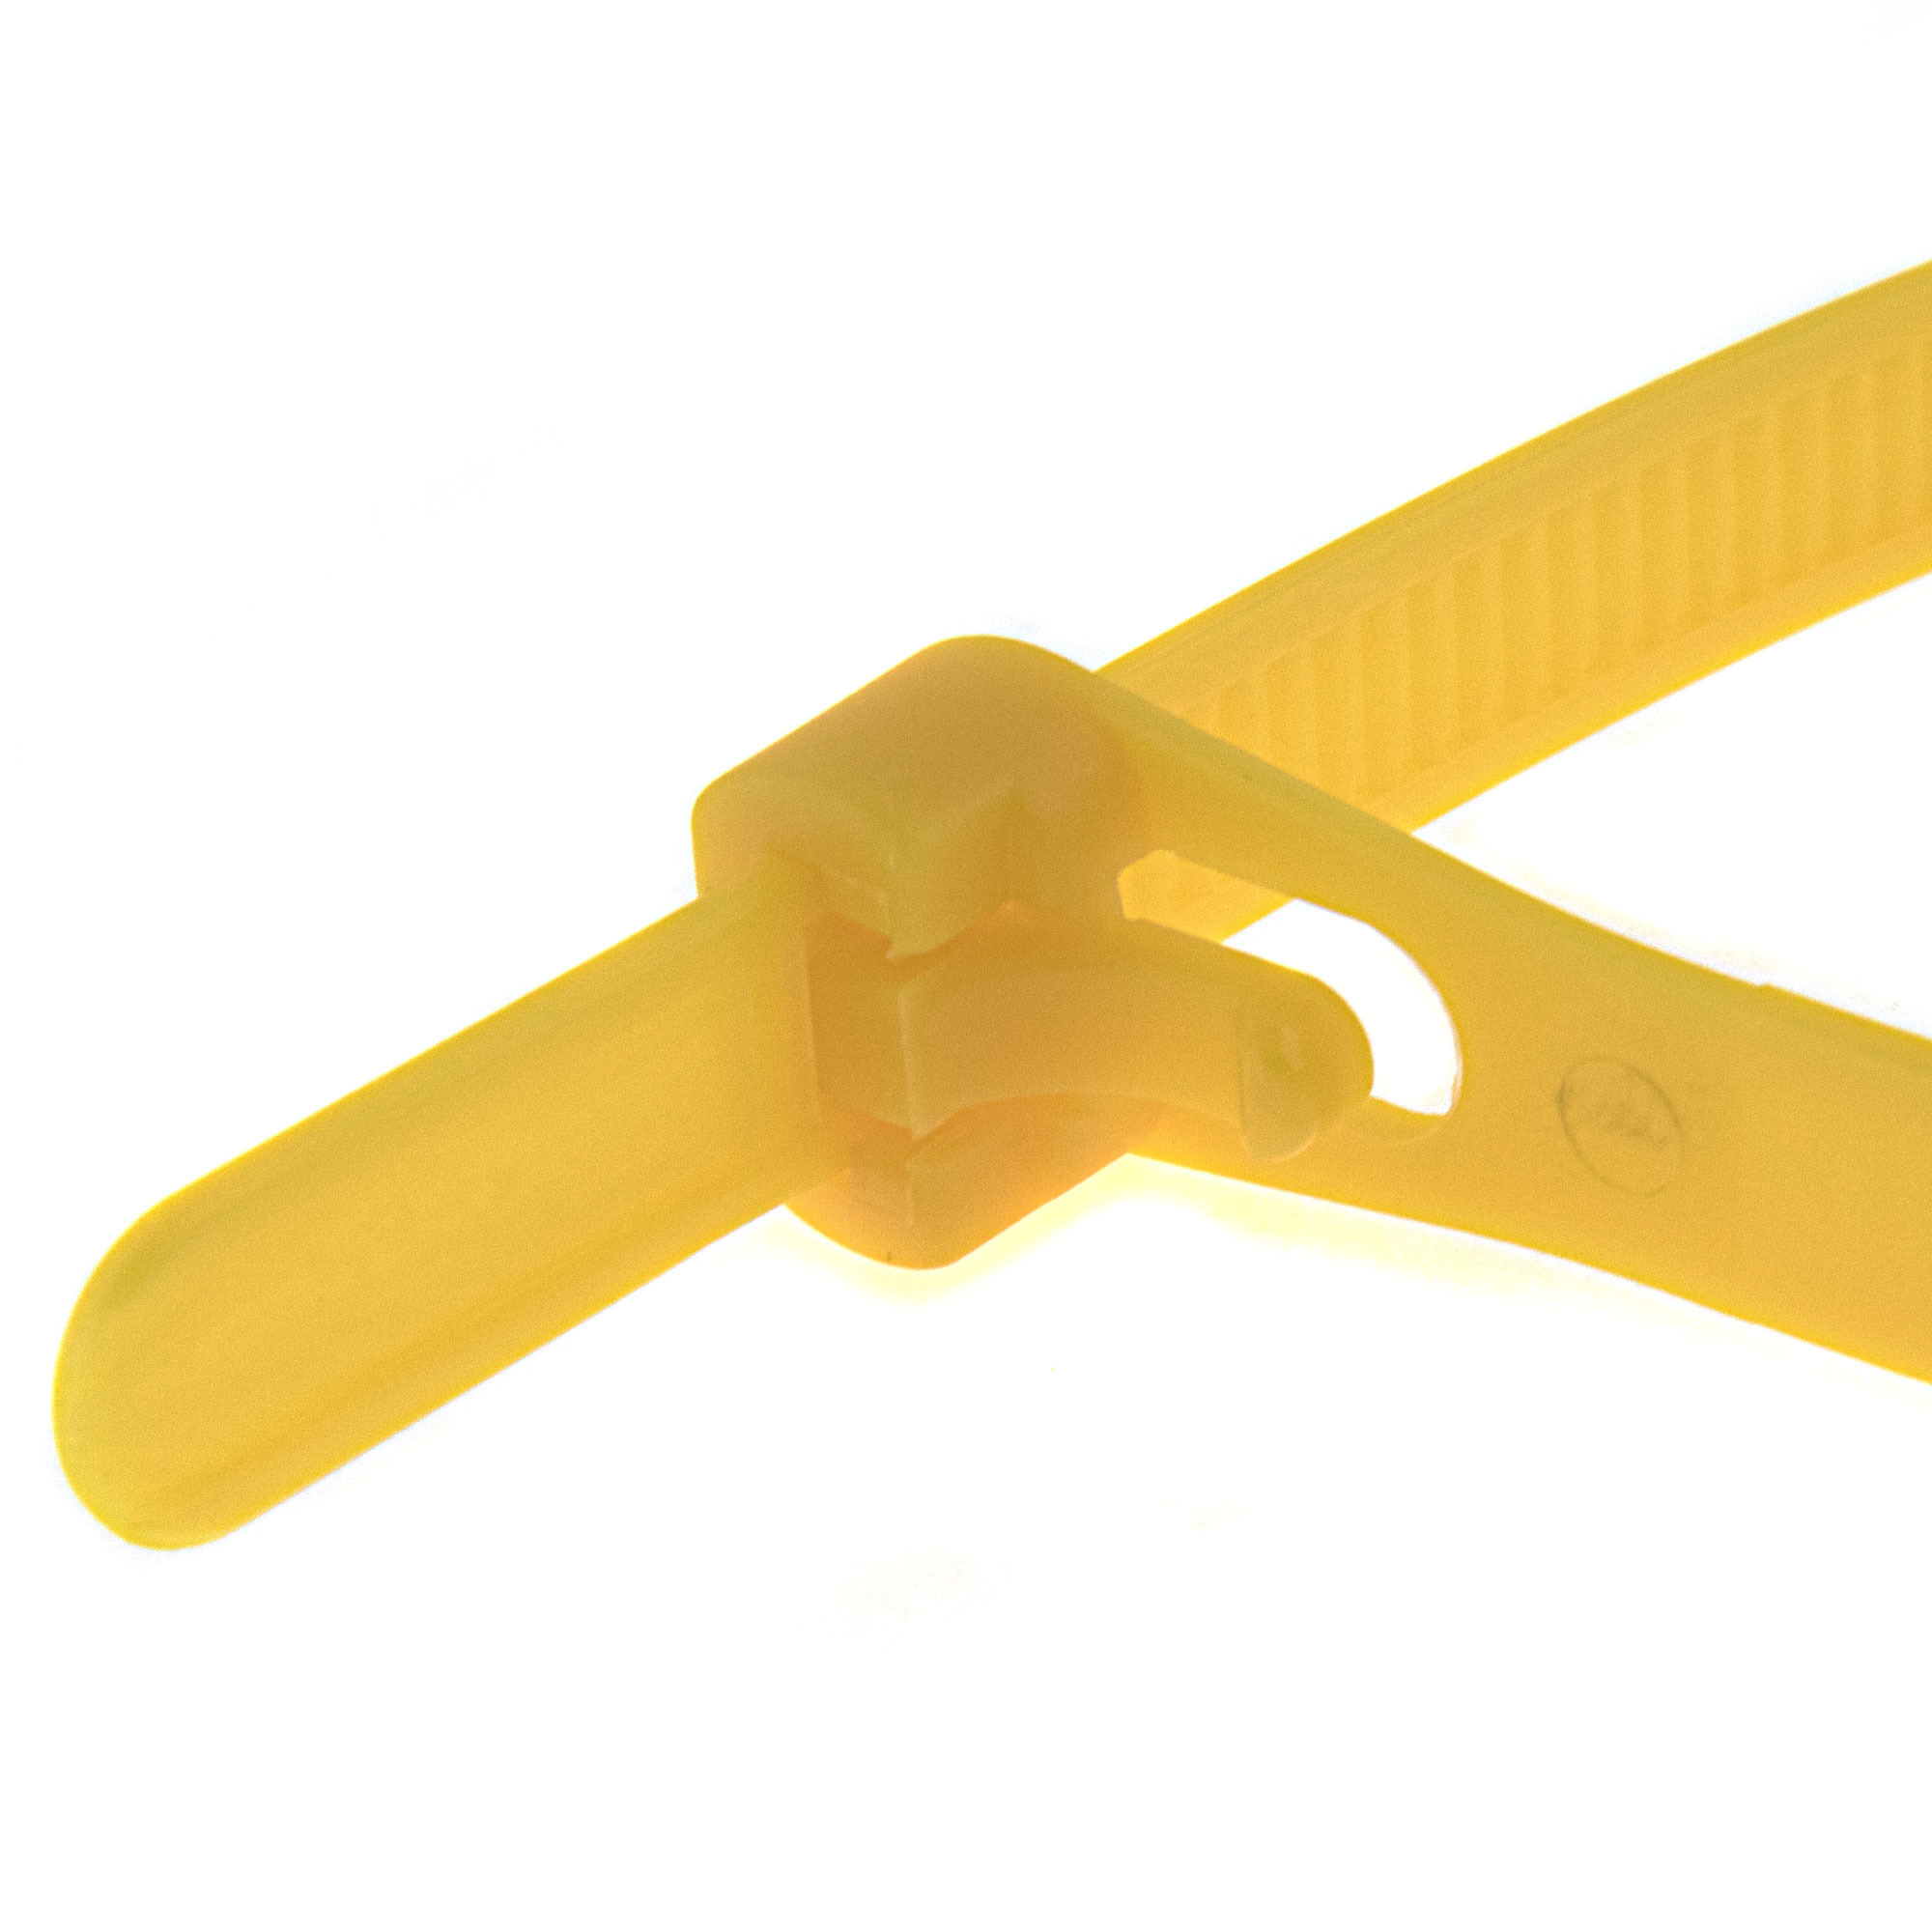 Cable tie re-use-able 250 x 7,6mm, yellow, 100PCS